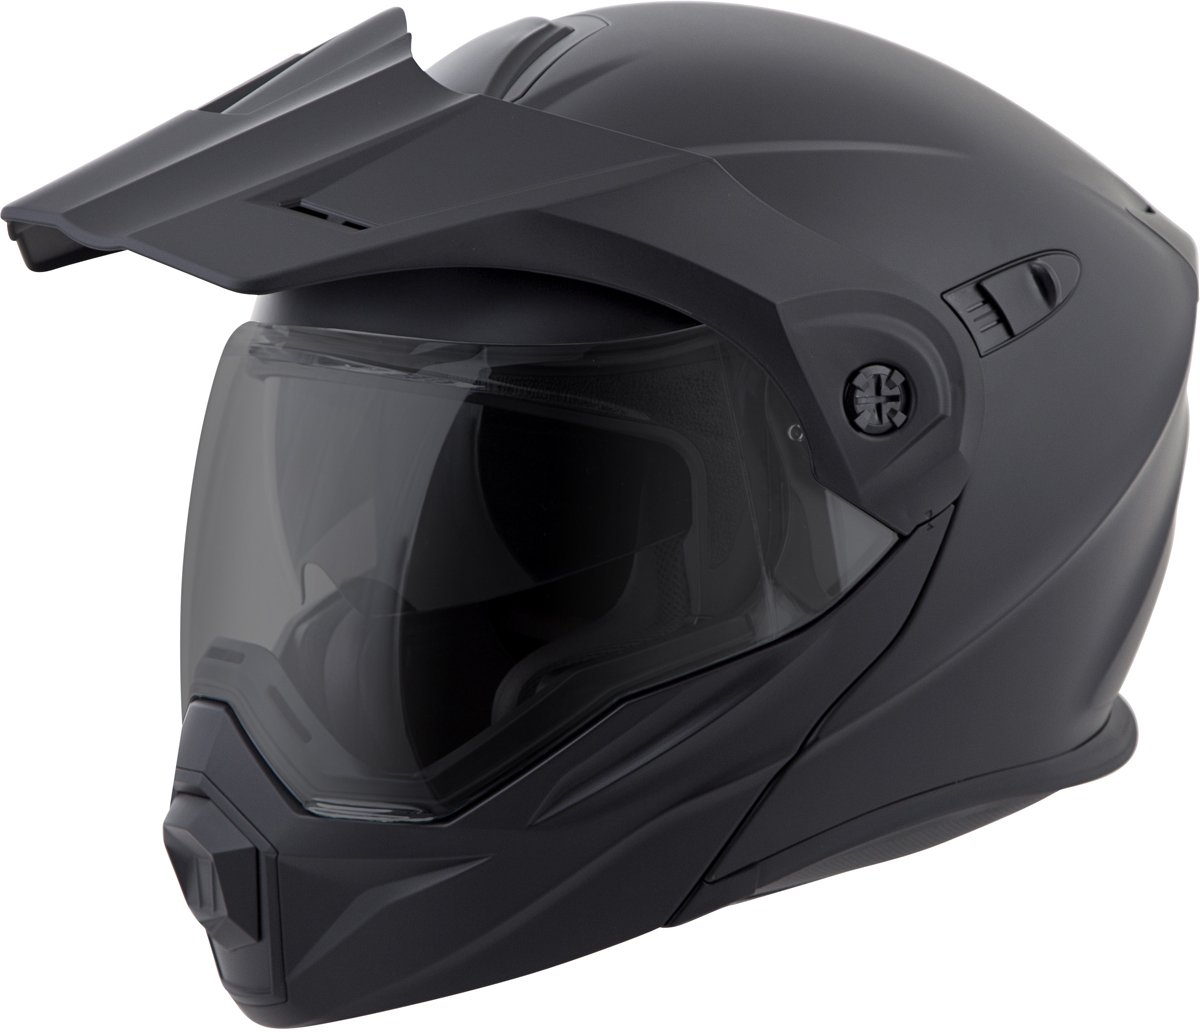 EXO-AT950 COLD WEATHER HELMET BLACK XL